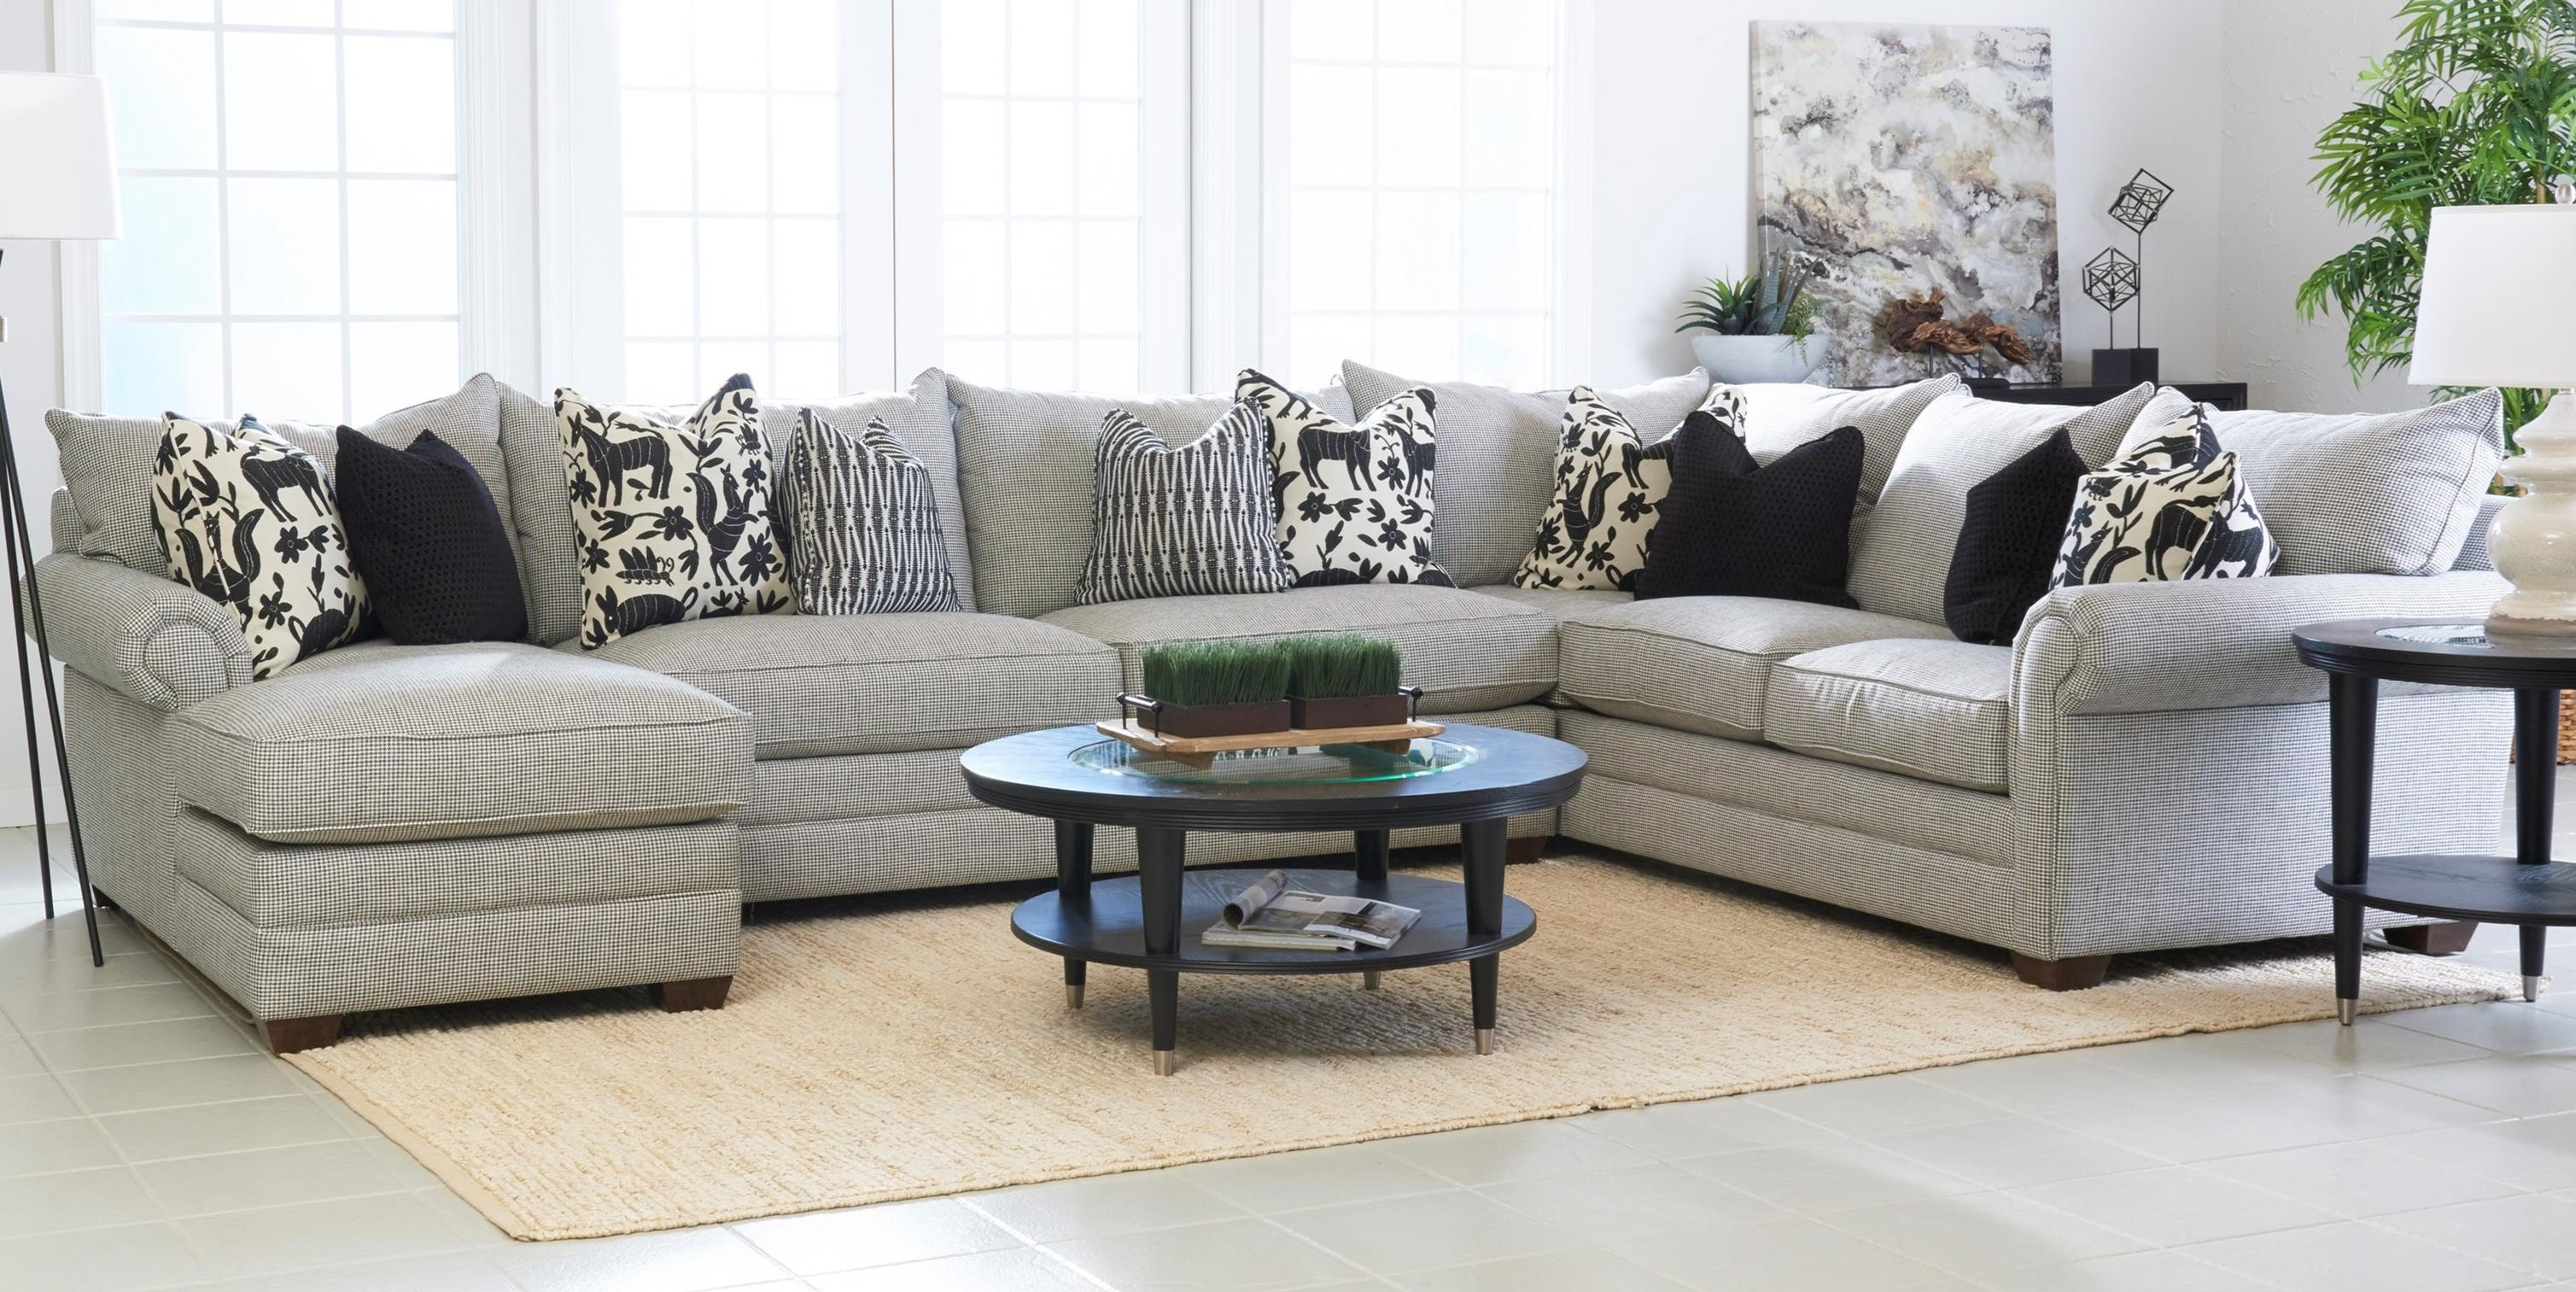 Huntley 4 Pc Sectional Sofa w/ LAF Chaise by Klaussner at Northeast Factory Direct